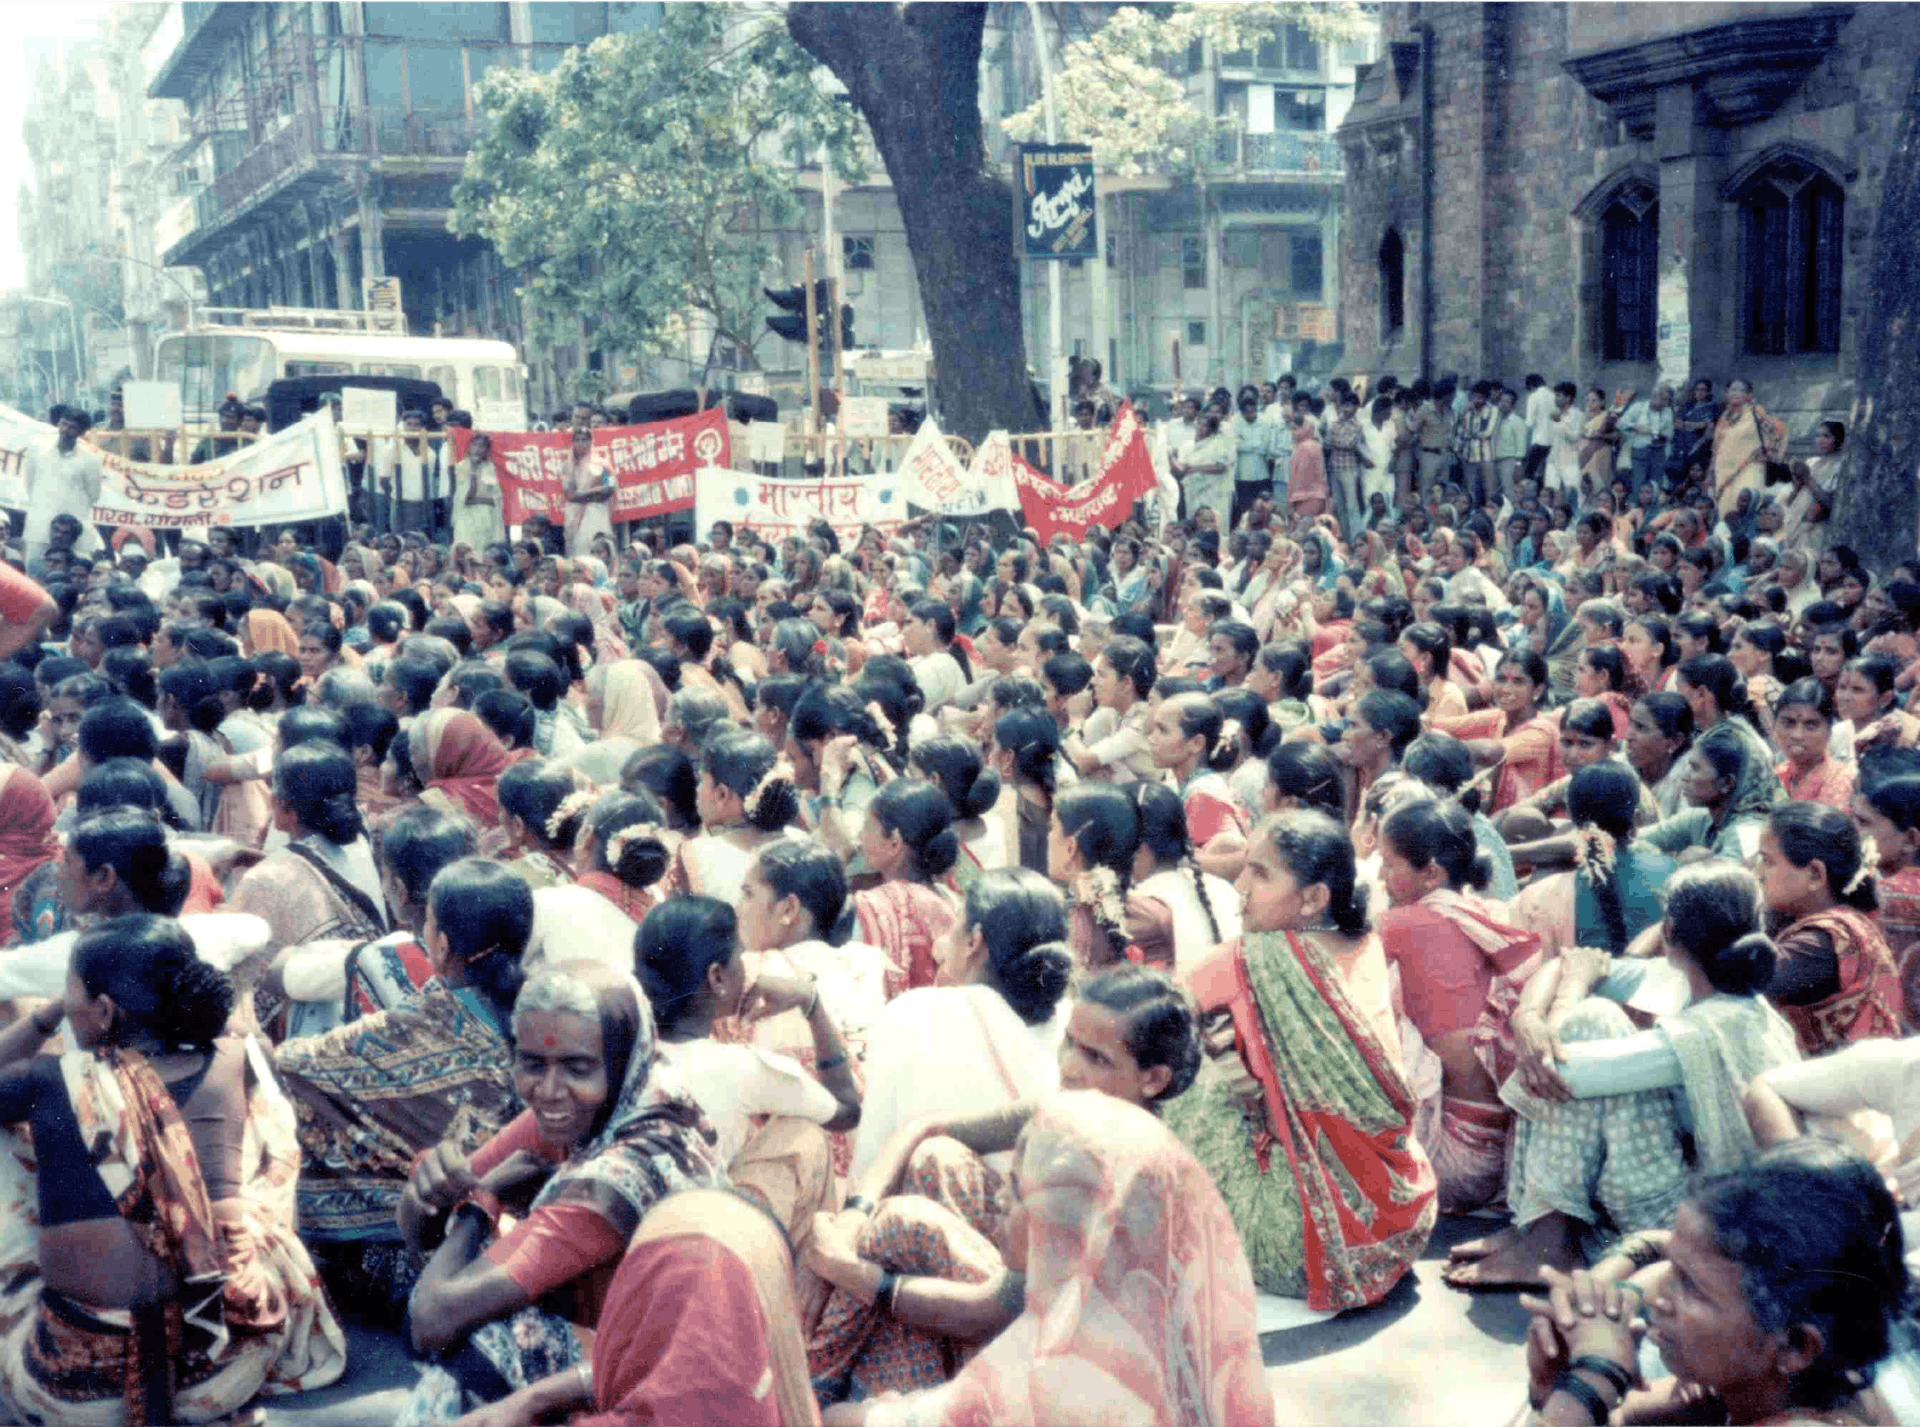 A public meeting to demand reopening of the Mathura case, in Mumbai's Kala Ghoda area in March 1980. Credit: Vibhuti Patel